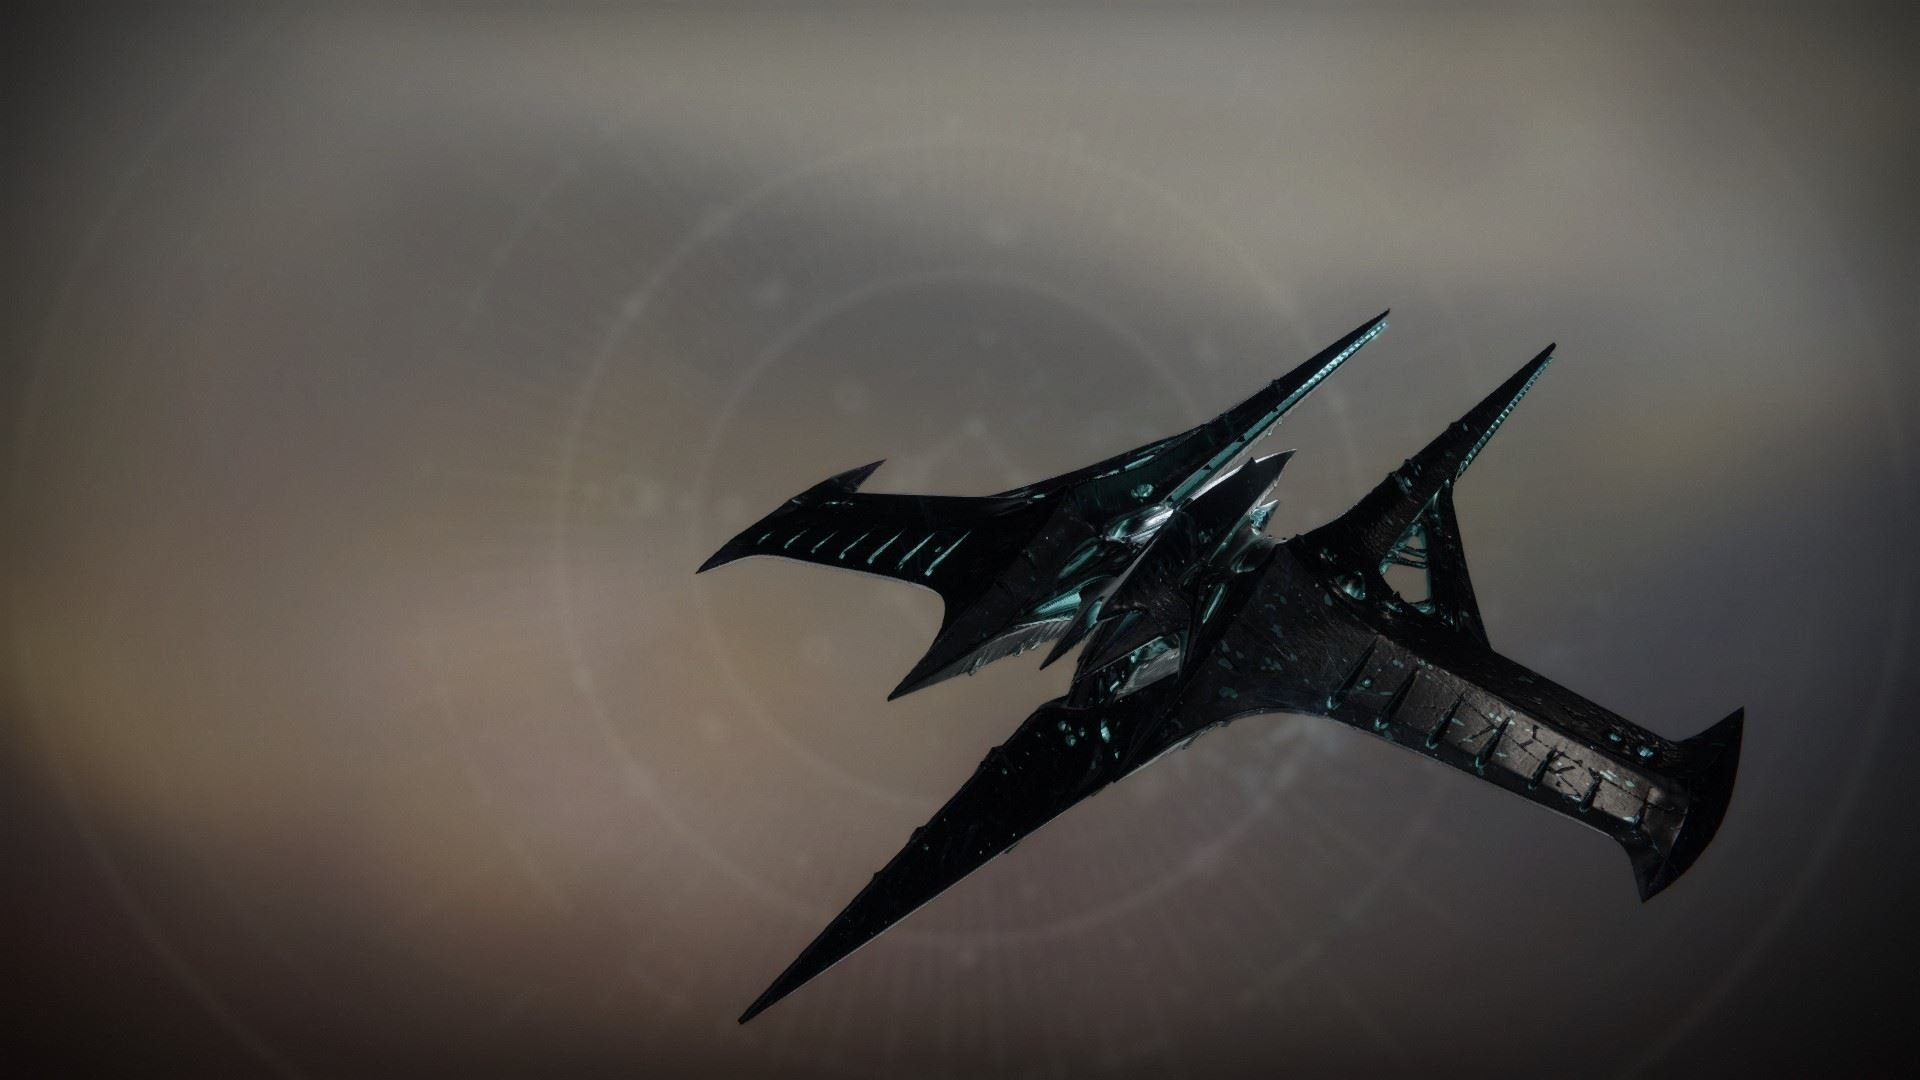 An in-game render of the A Thousand Wings.